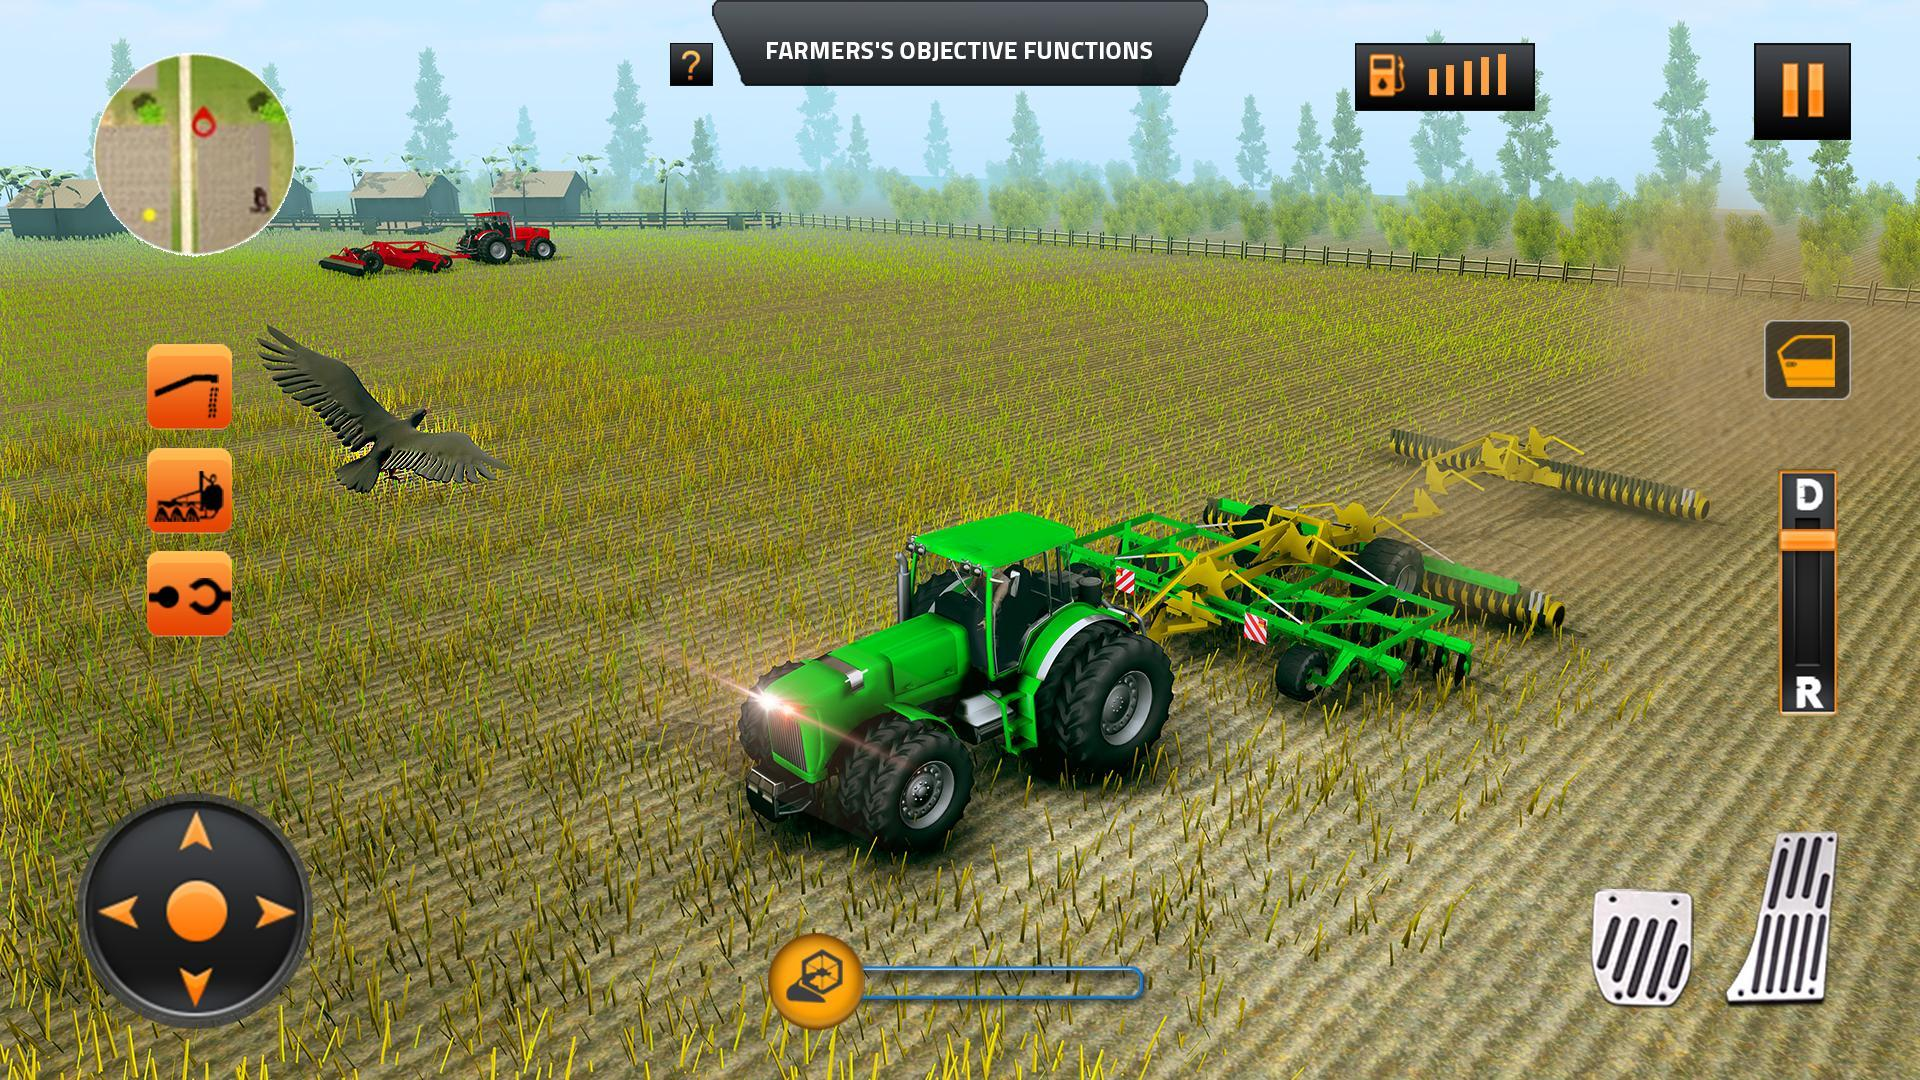 Real Tractor Farming Simulator 2019 for Android - APK Download